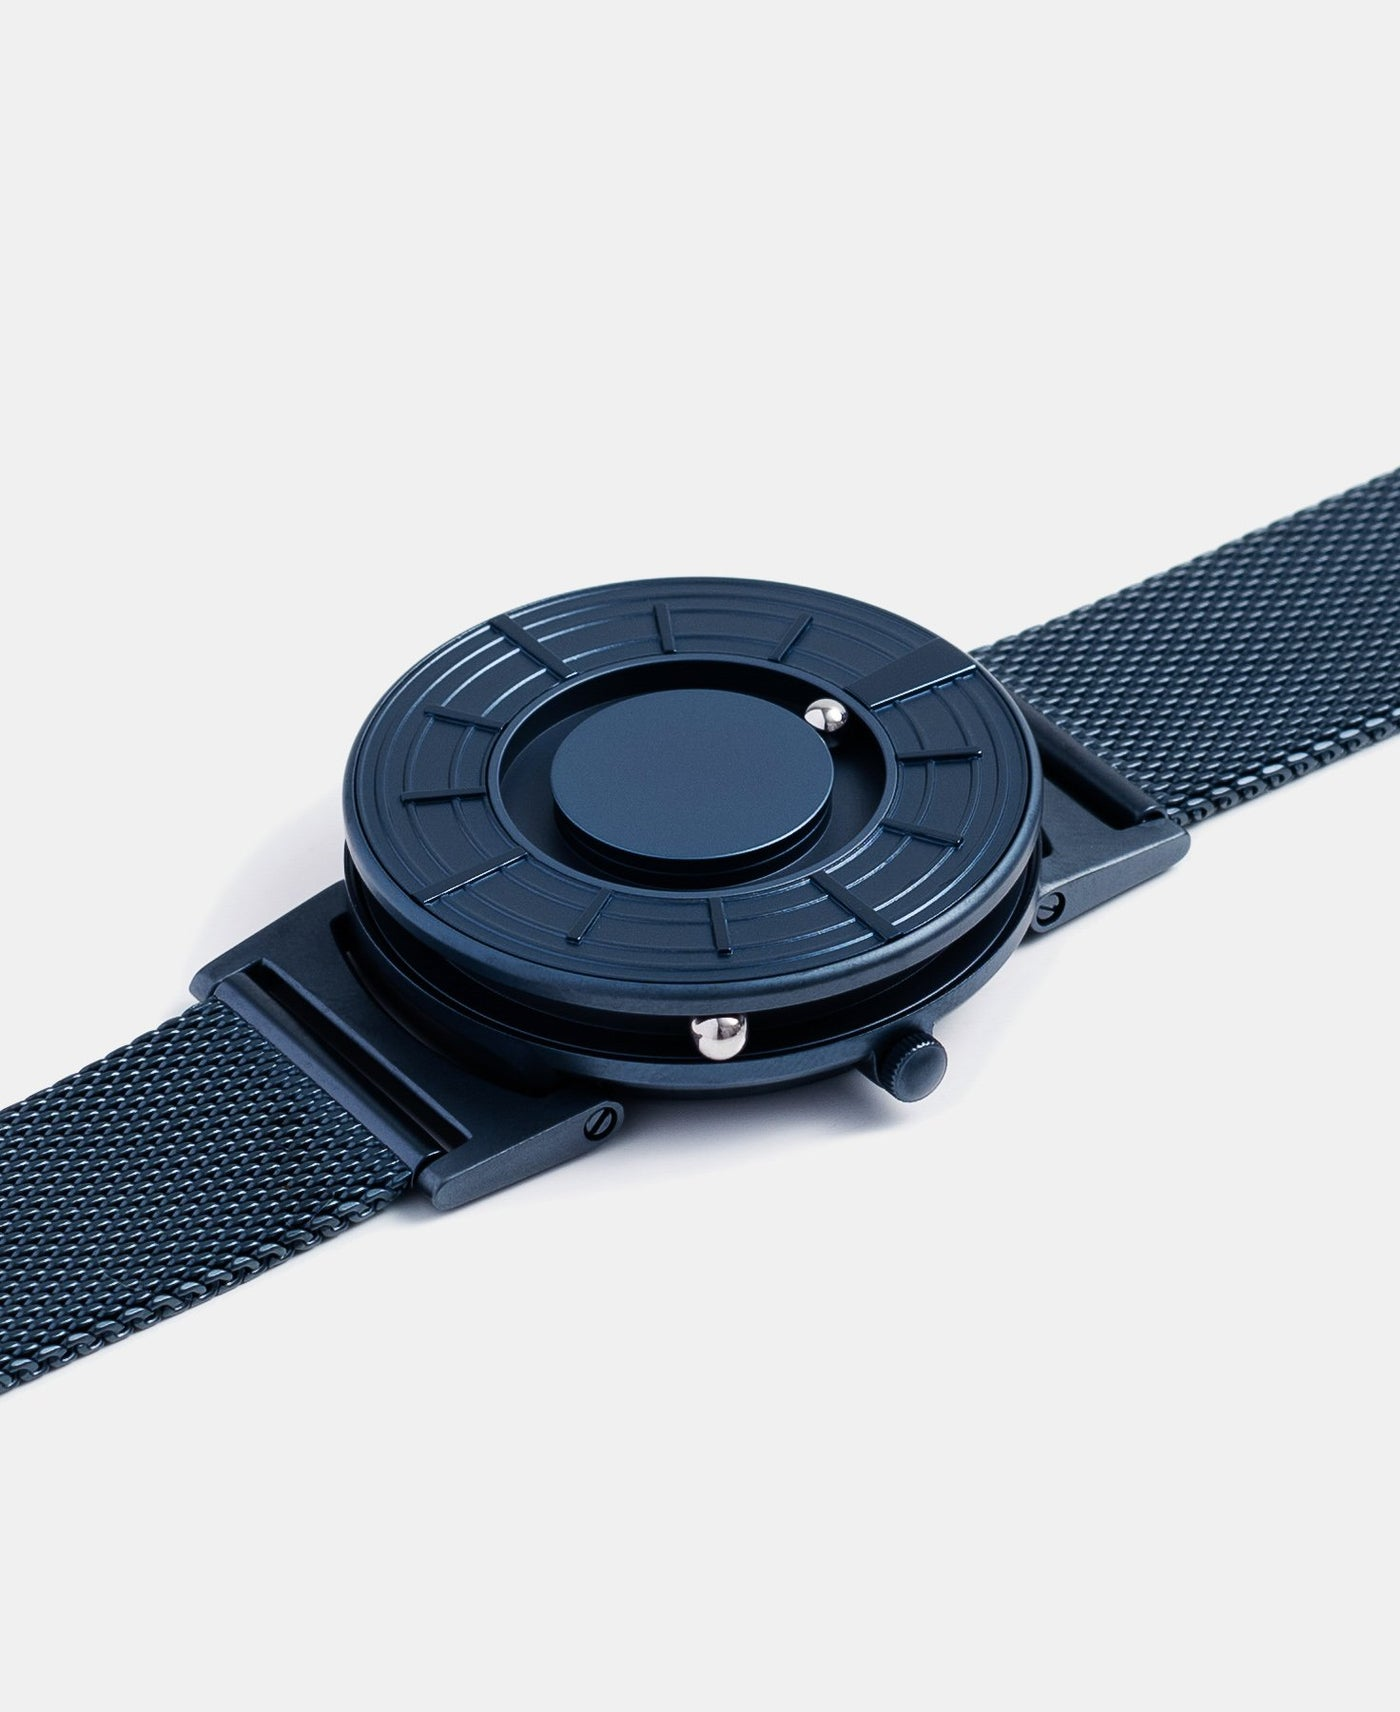 A photo of the watch lying flat on a surface. The recessed track around the outside of the watch face is shown with the hour ball bearing in the track. The raised markers are noticeable from this perspective.